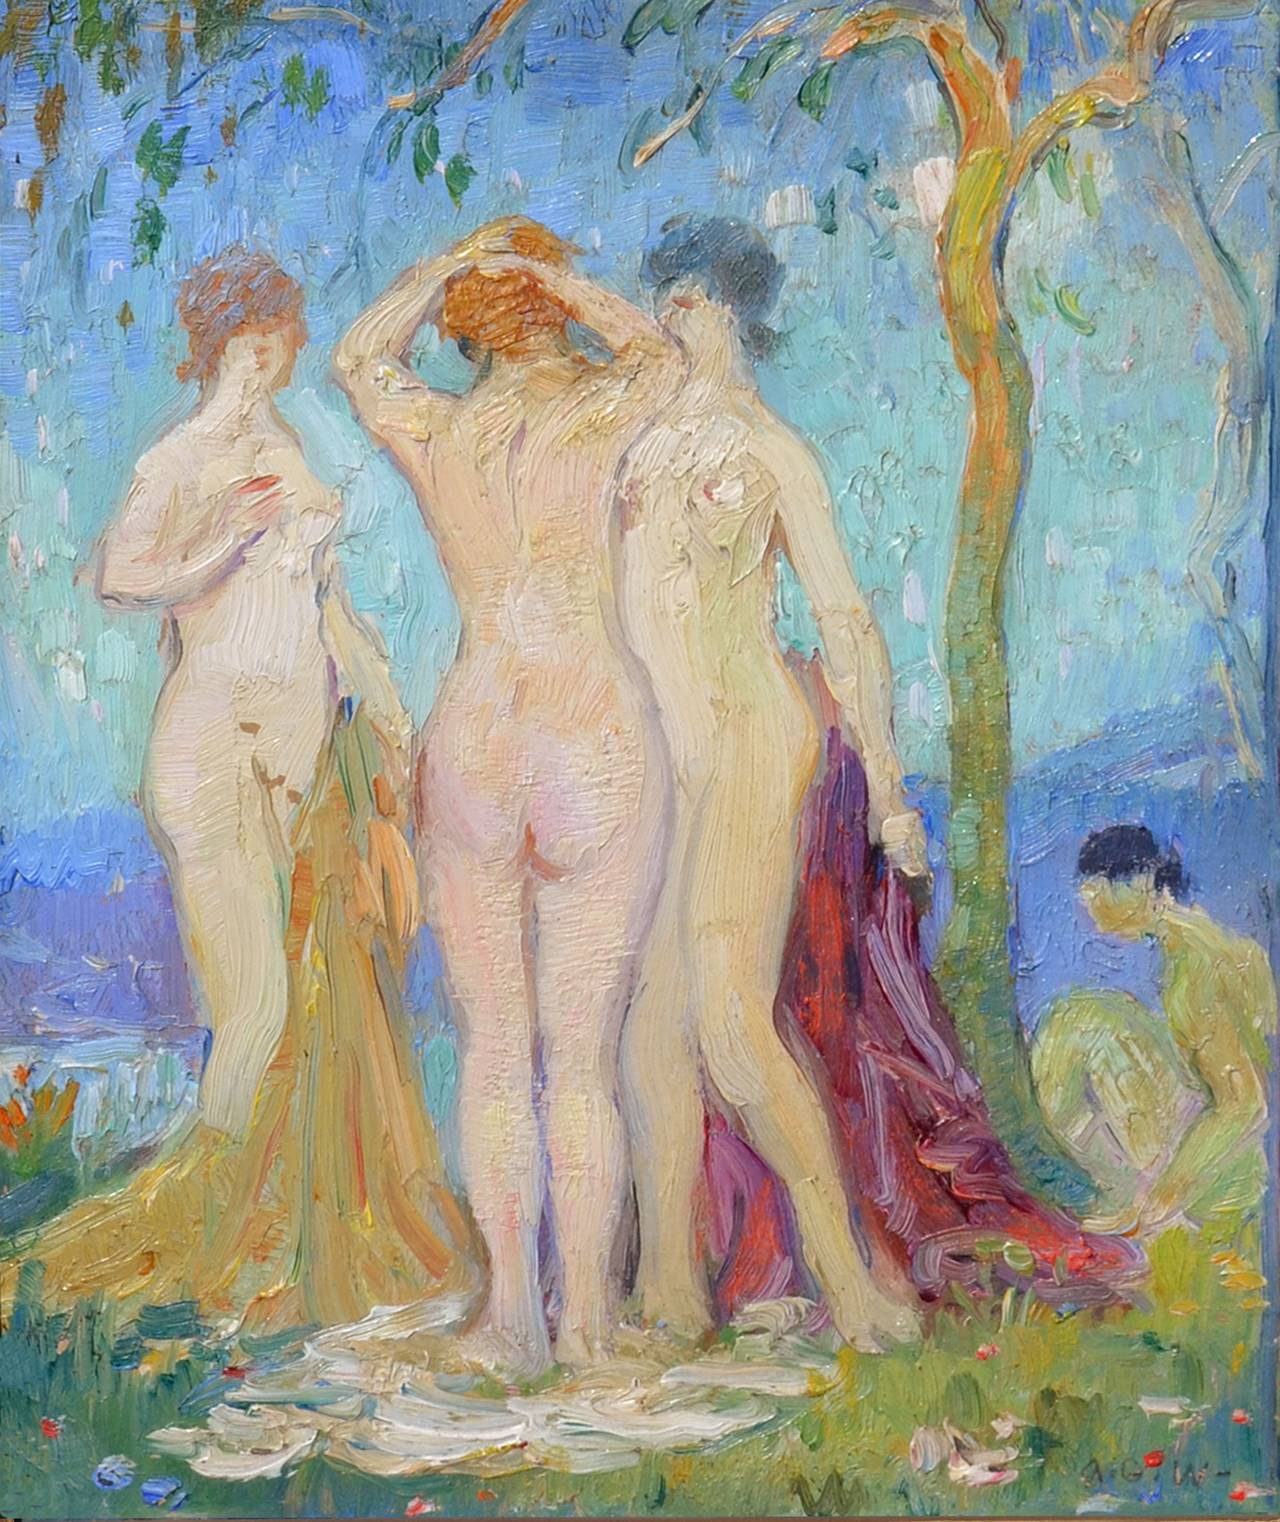 Nudes in the Garden, France C. 1929 - Painting by Abel Warshawsky